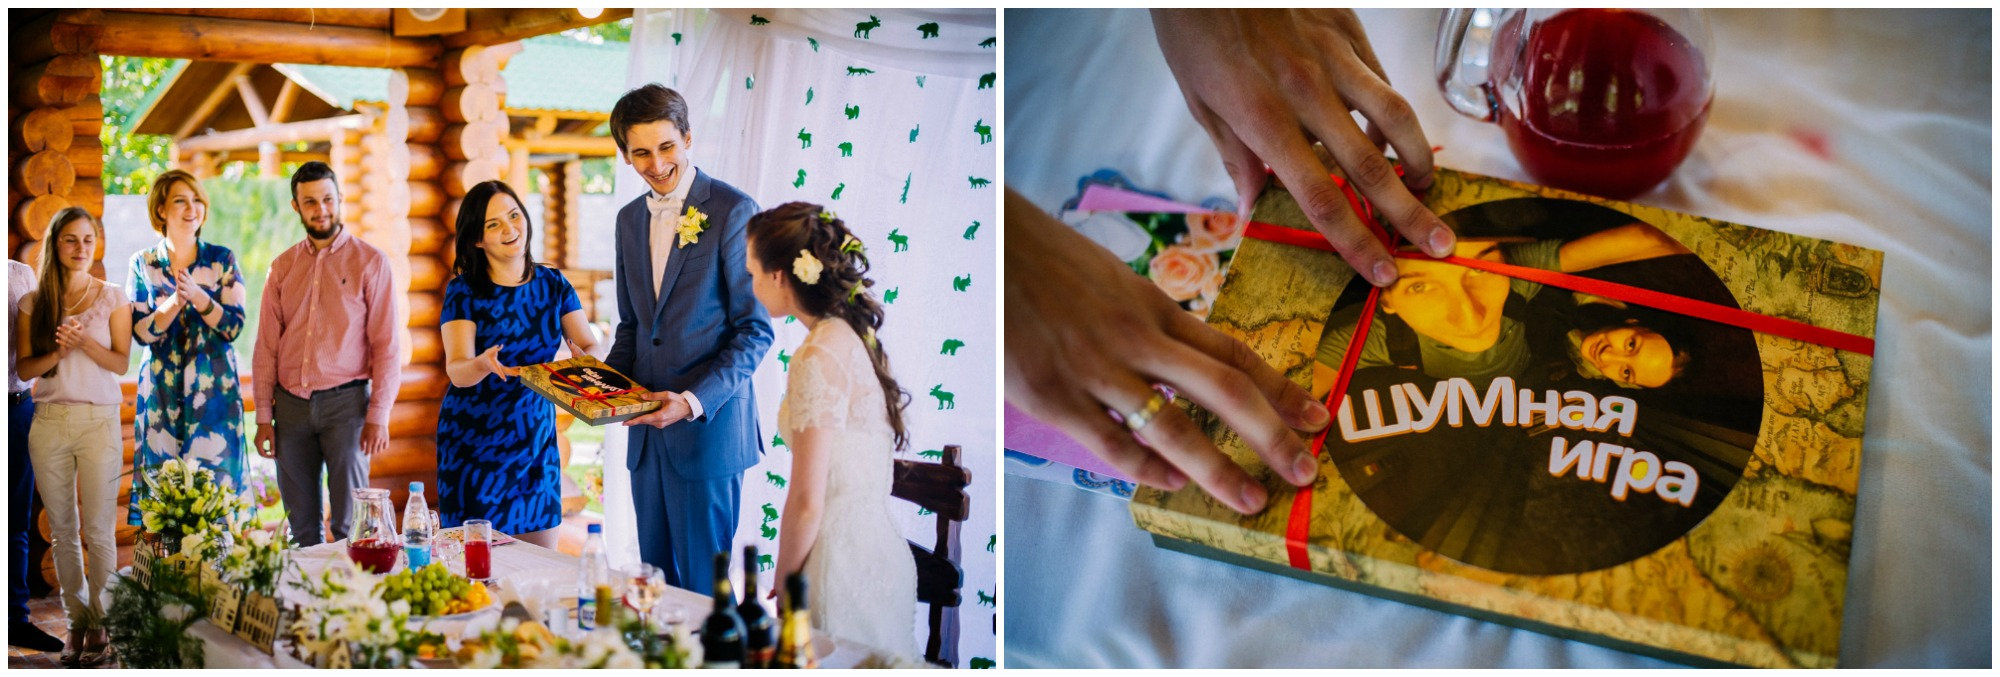 marina-ivan-wedding-412-%d0%b8%d0%b7-683